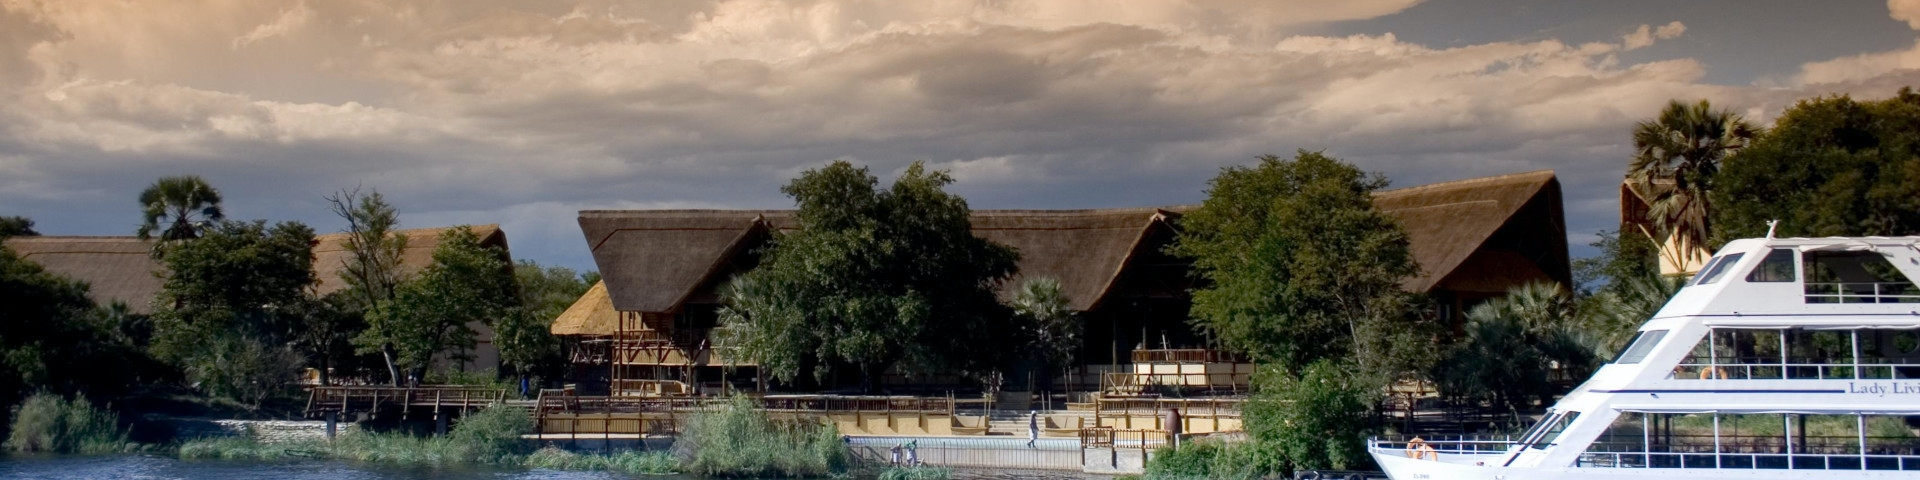 David Livingstone Safari Lodge - Victoria Falls - Zambia